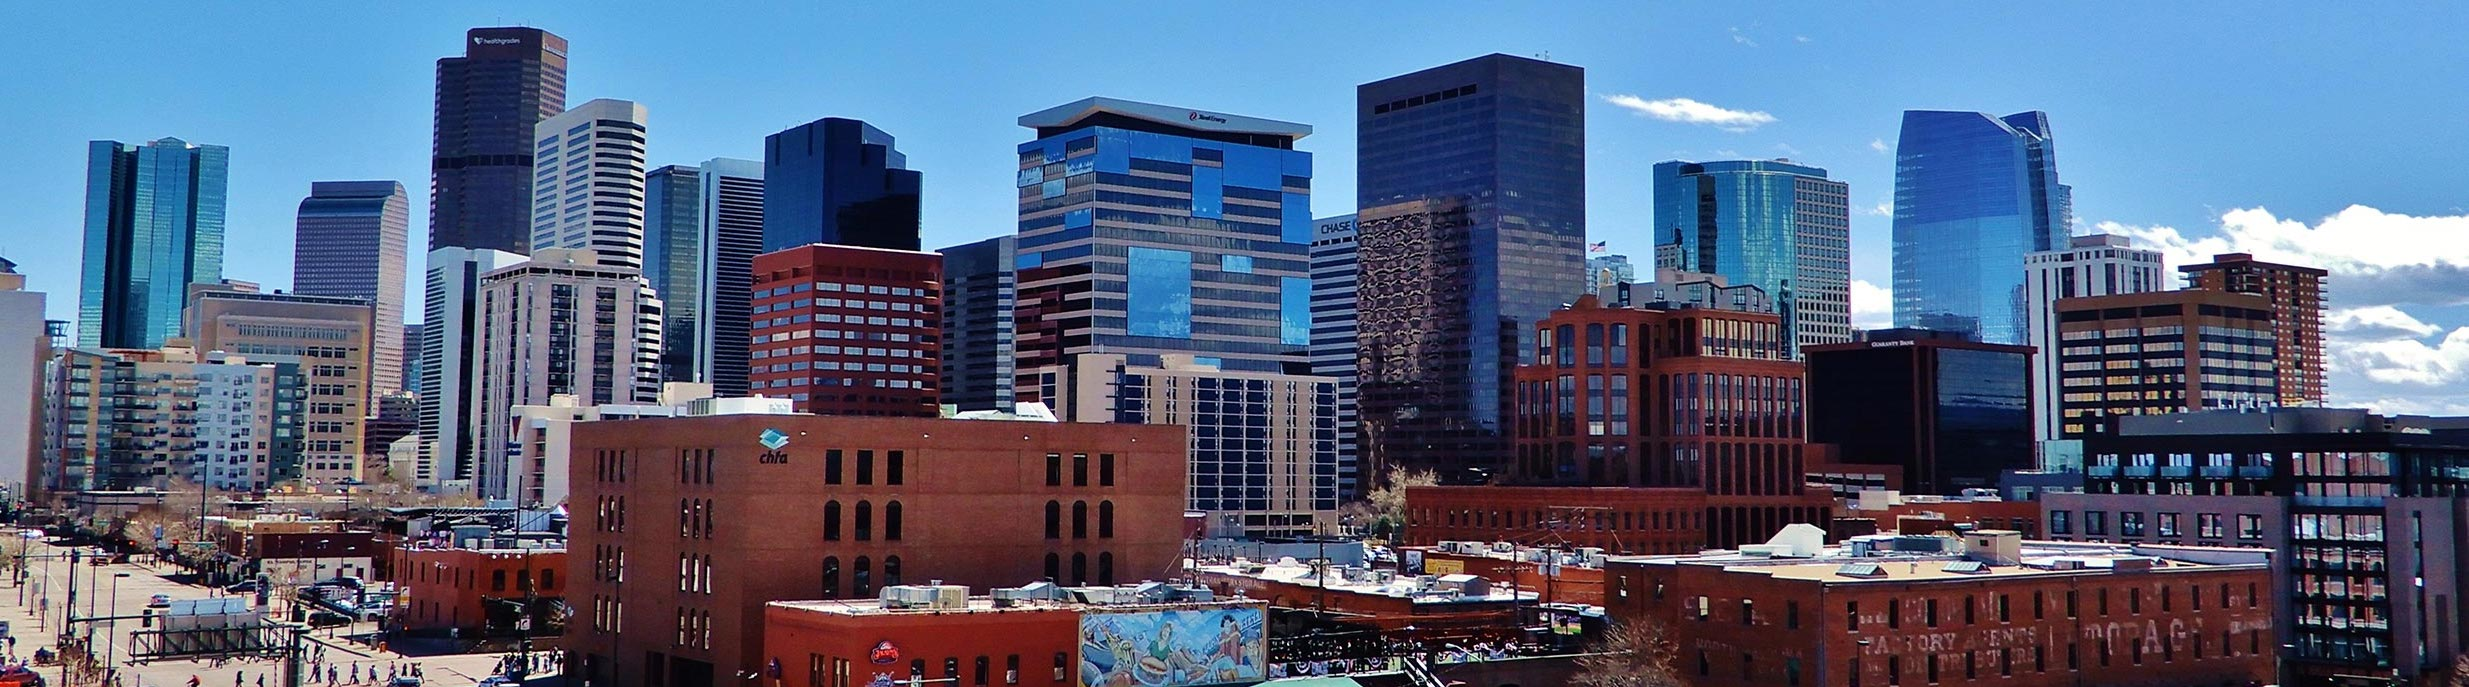 lodo in denver buildings skyline